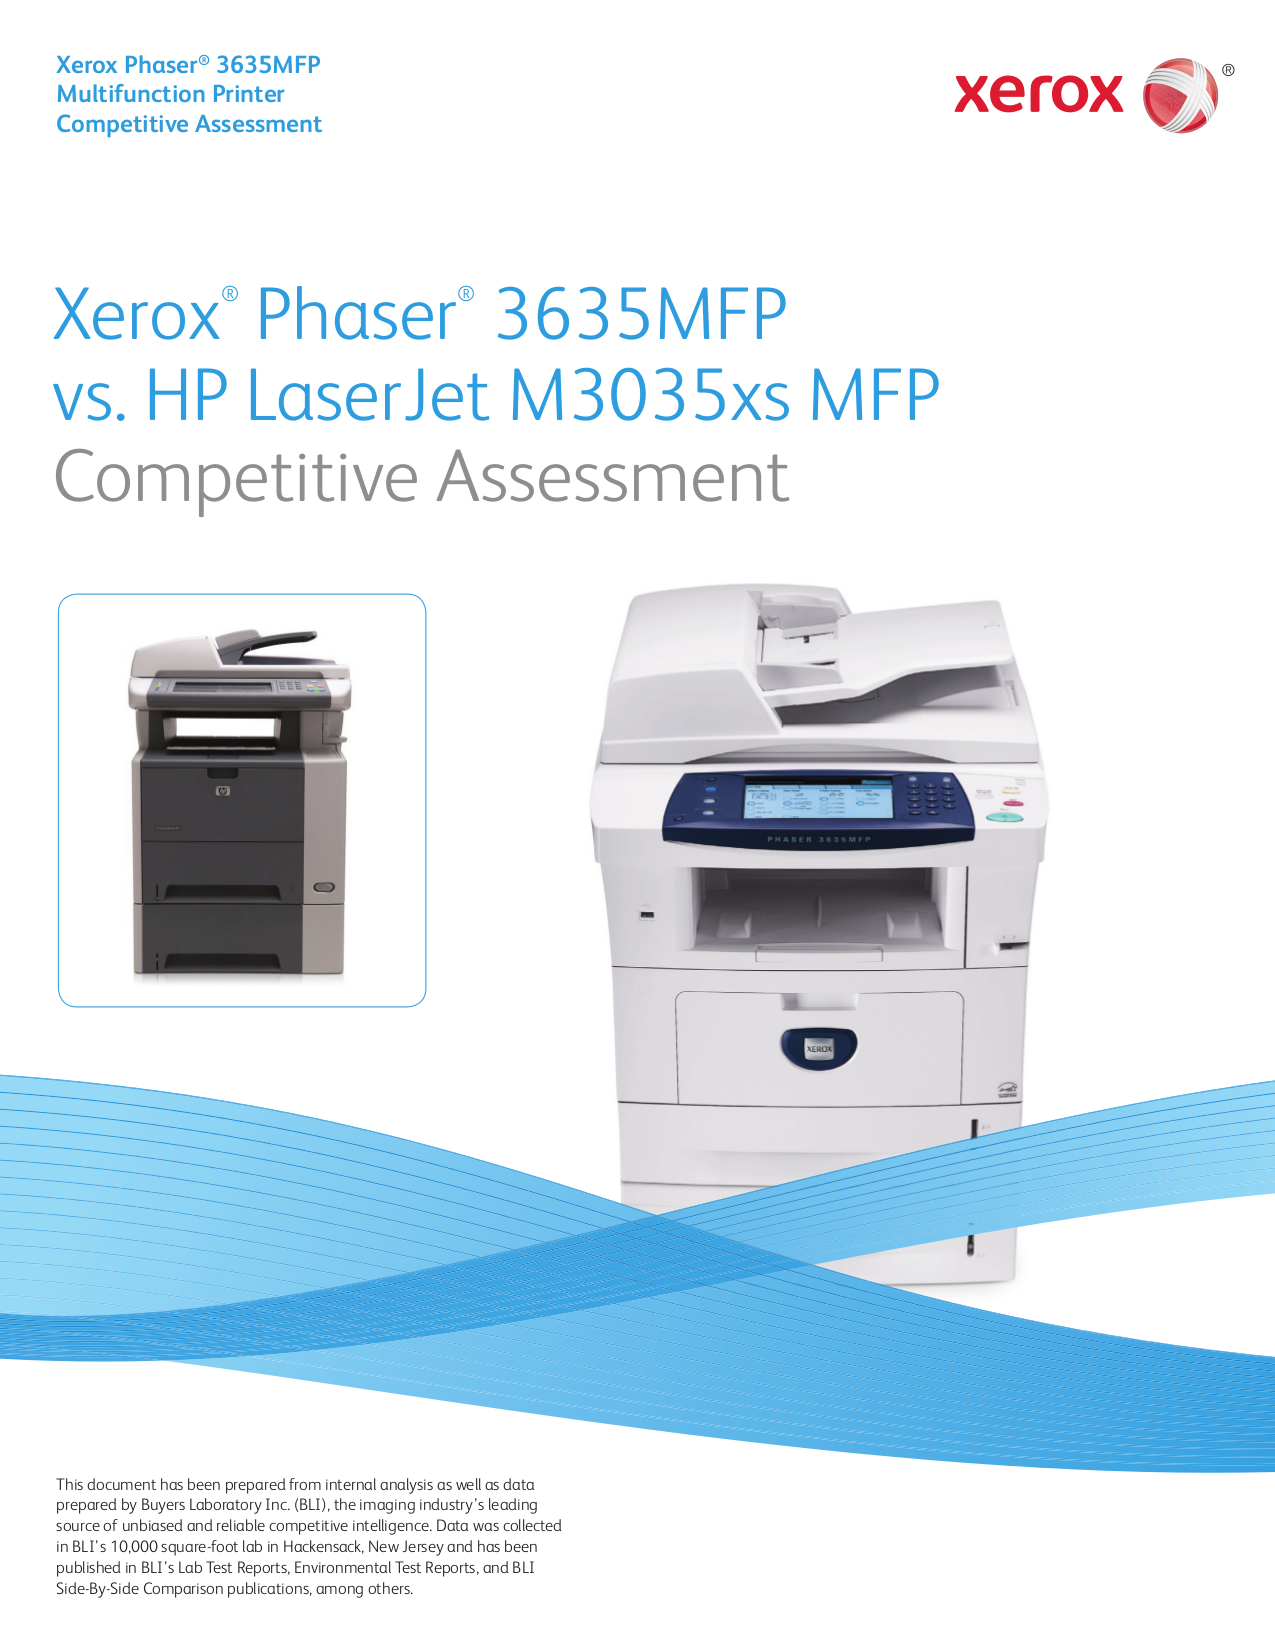 Wrg-1757] hp laserjet m3035 mfp user manual | 2019 ebook library.